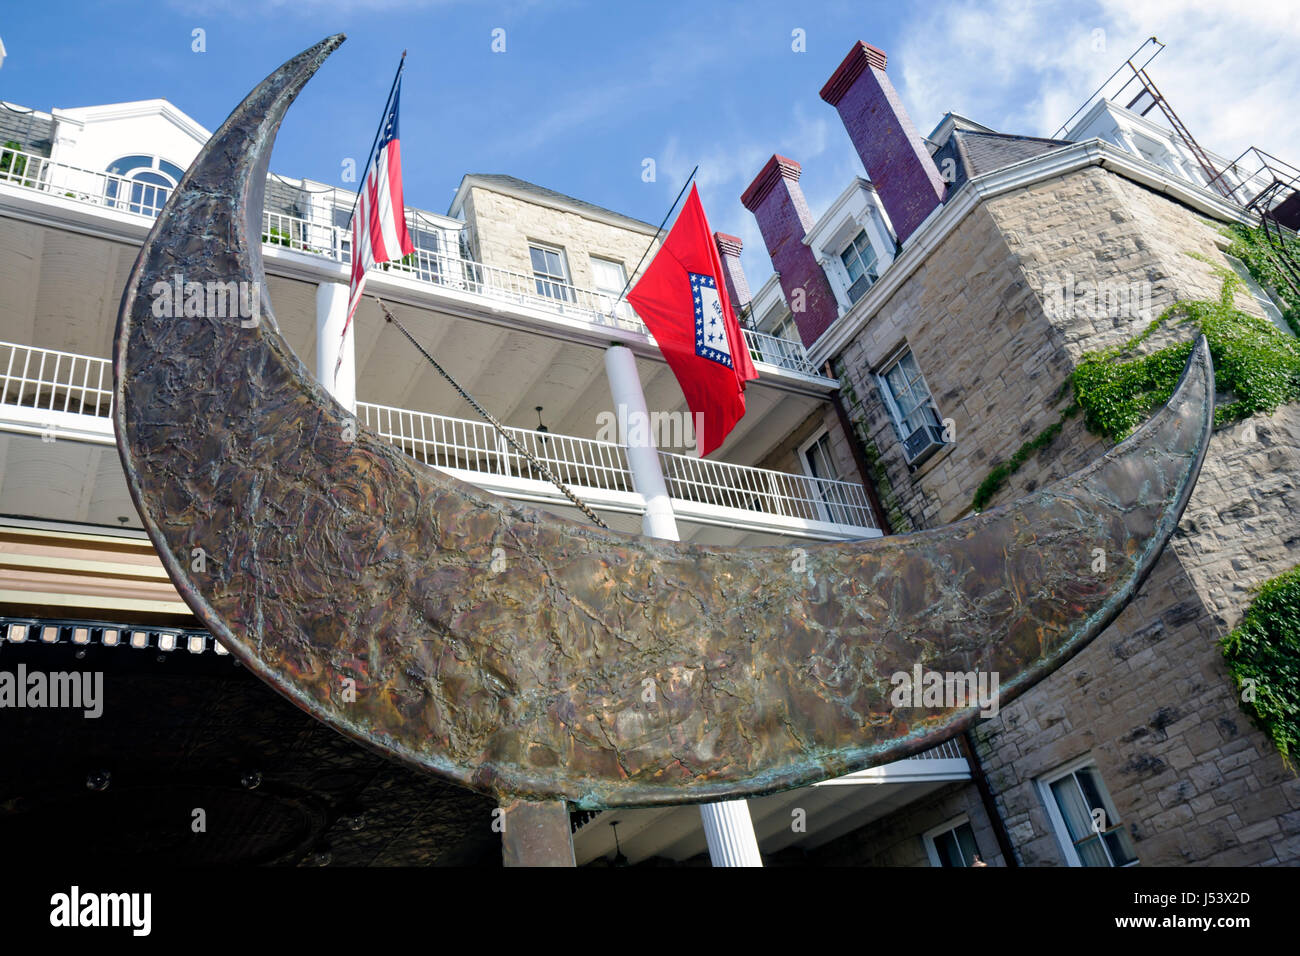 Arkansas Eureka Springs 1886 Crescent Hotel and Spa sculpture entrance lodging historic limestone haunted ghost - Stock Image